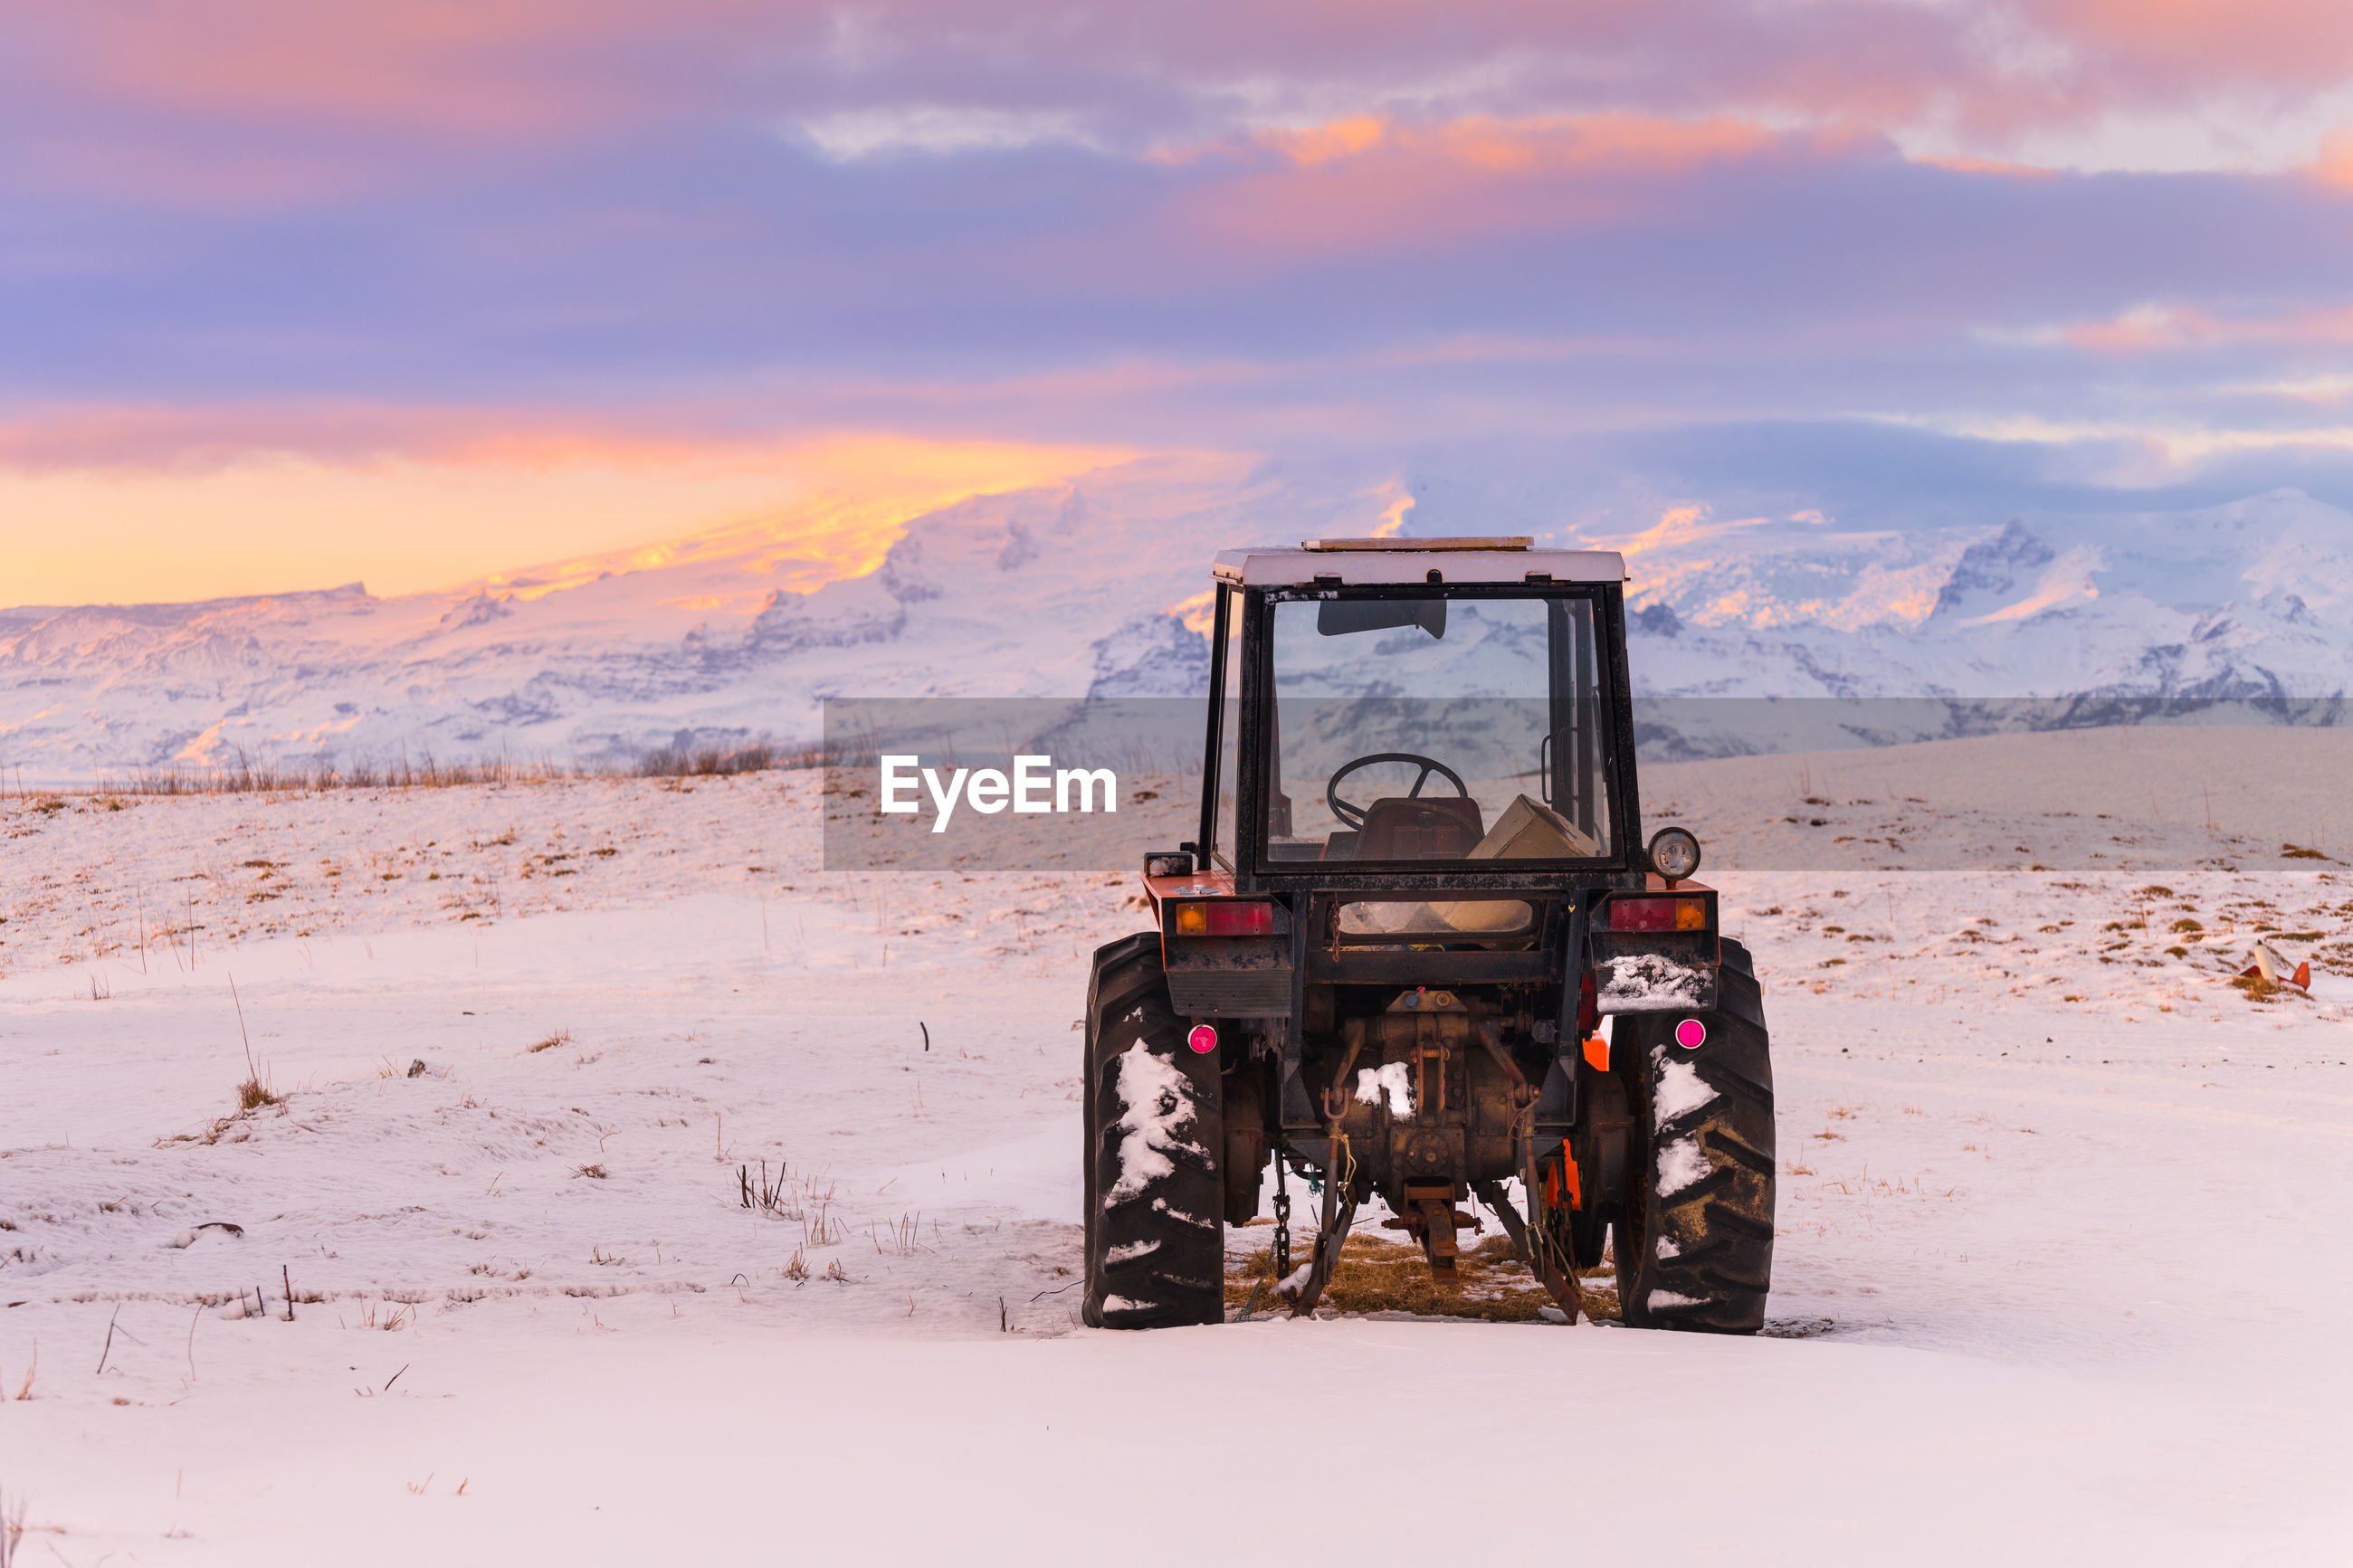 BUILT STRUCTURE ON FIELD AGAINST SNOWCAPPED MOUNTAINS DURING SUNSET